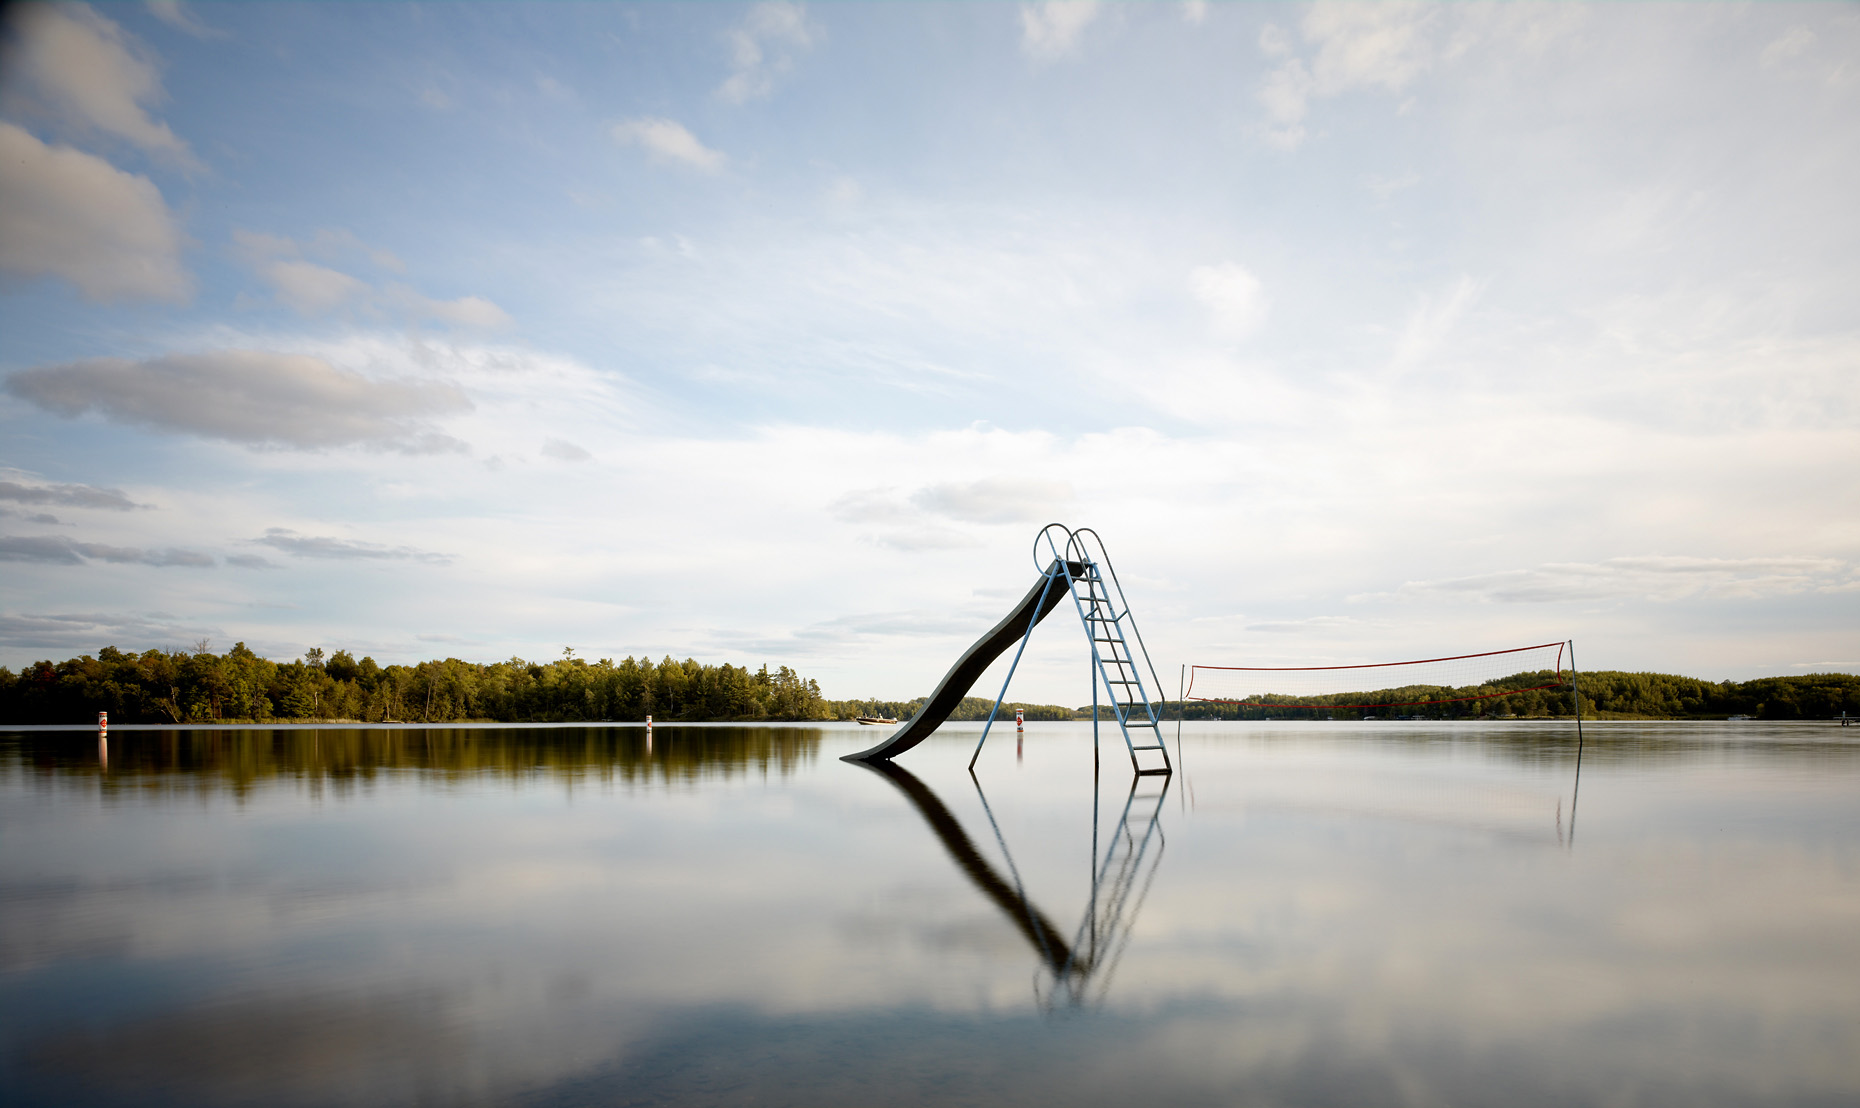 David Bowman fine art water architecture landscape photographs 06